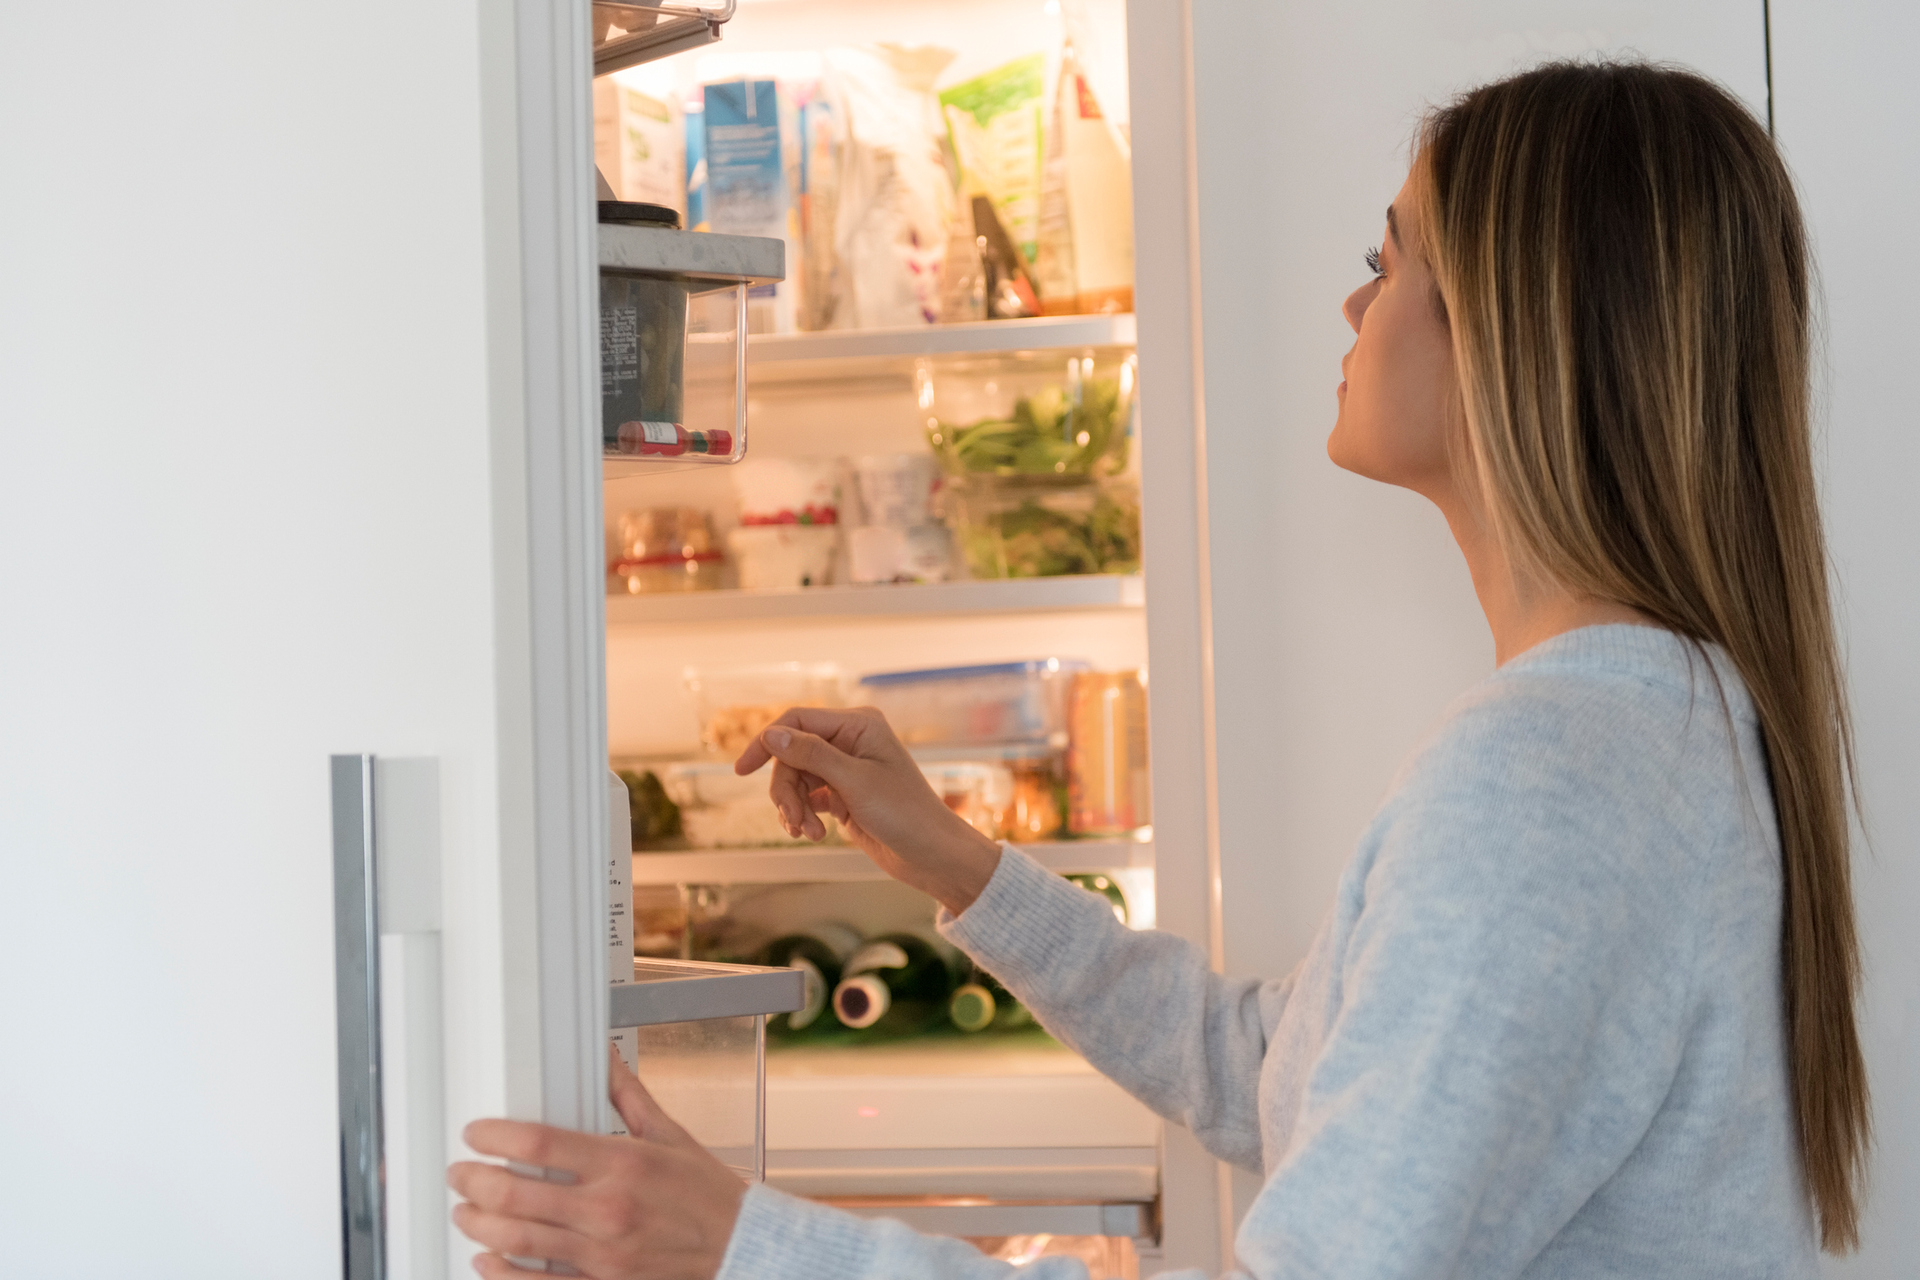 Do you put bread in the fridge? Question divides internet